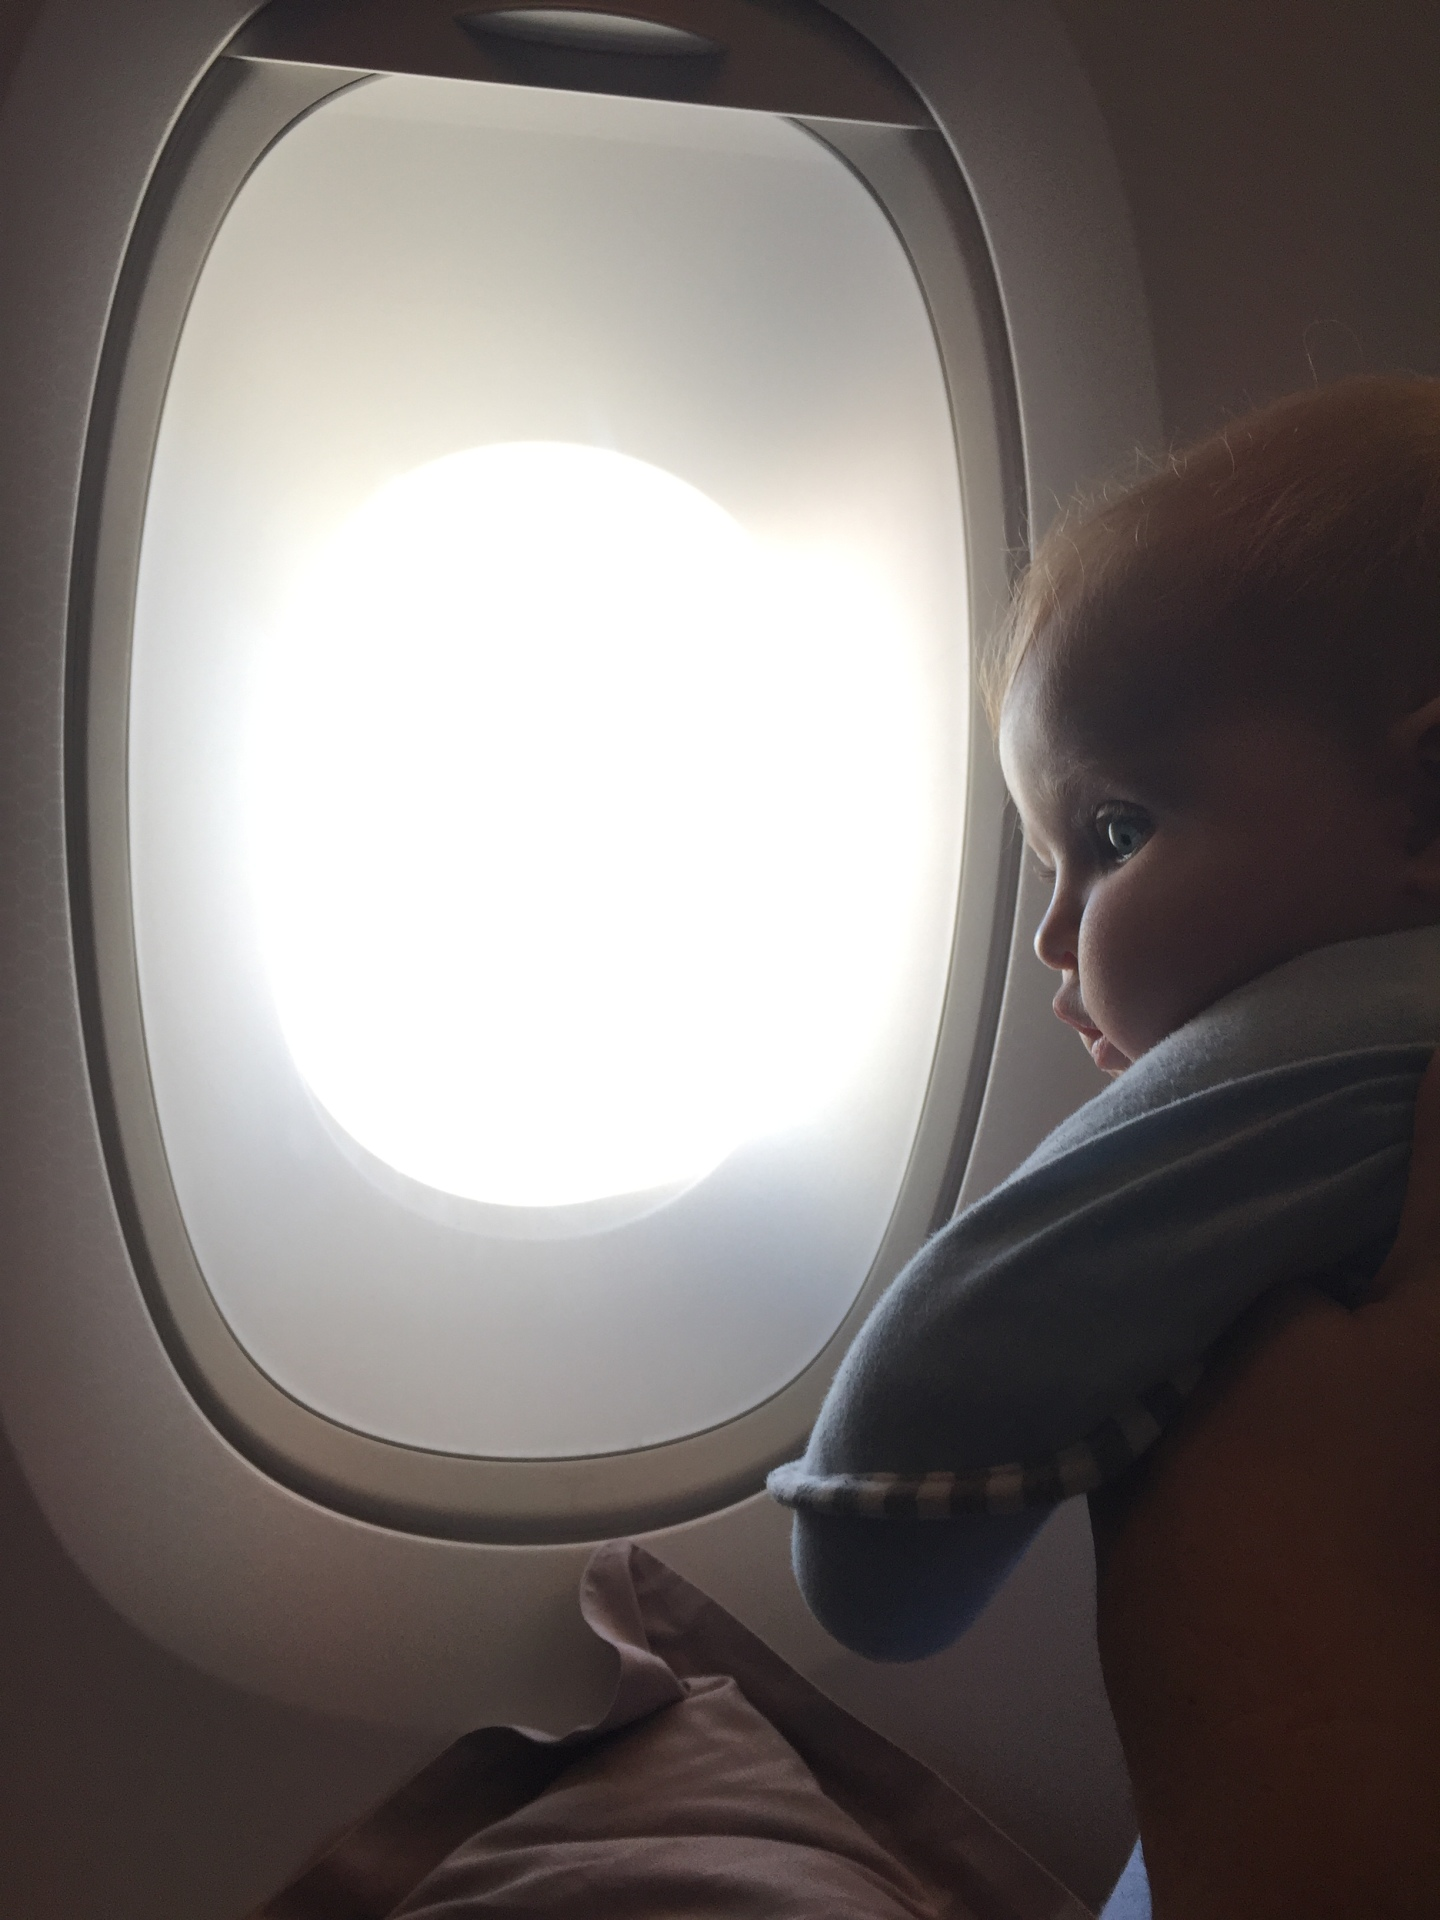 Travelling with young ones on flights